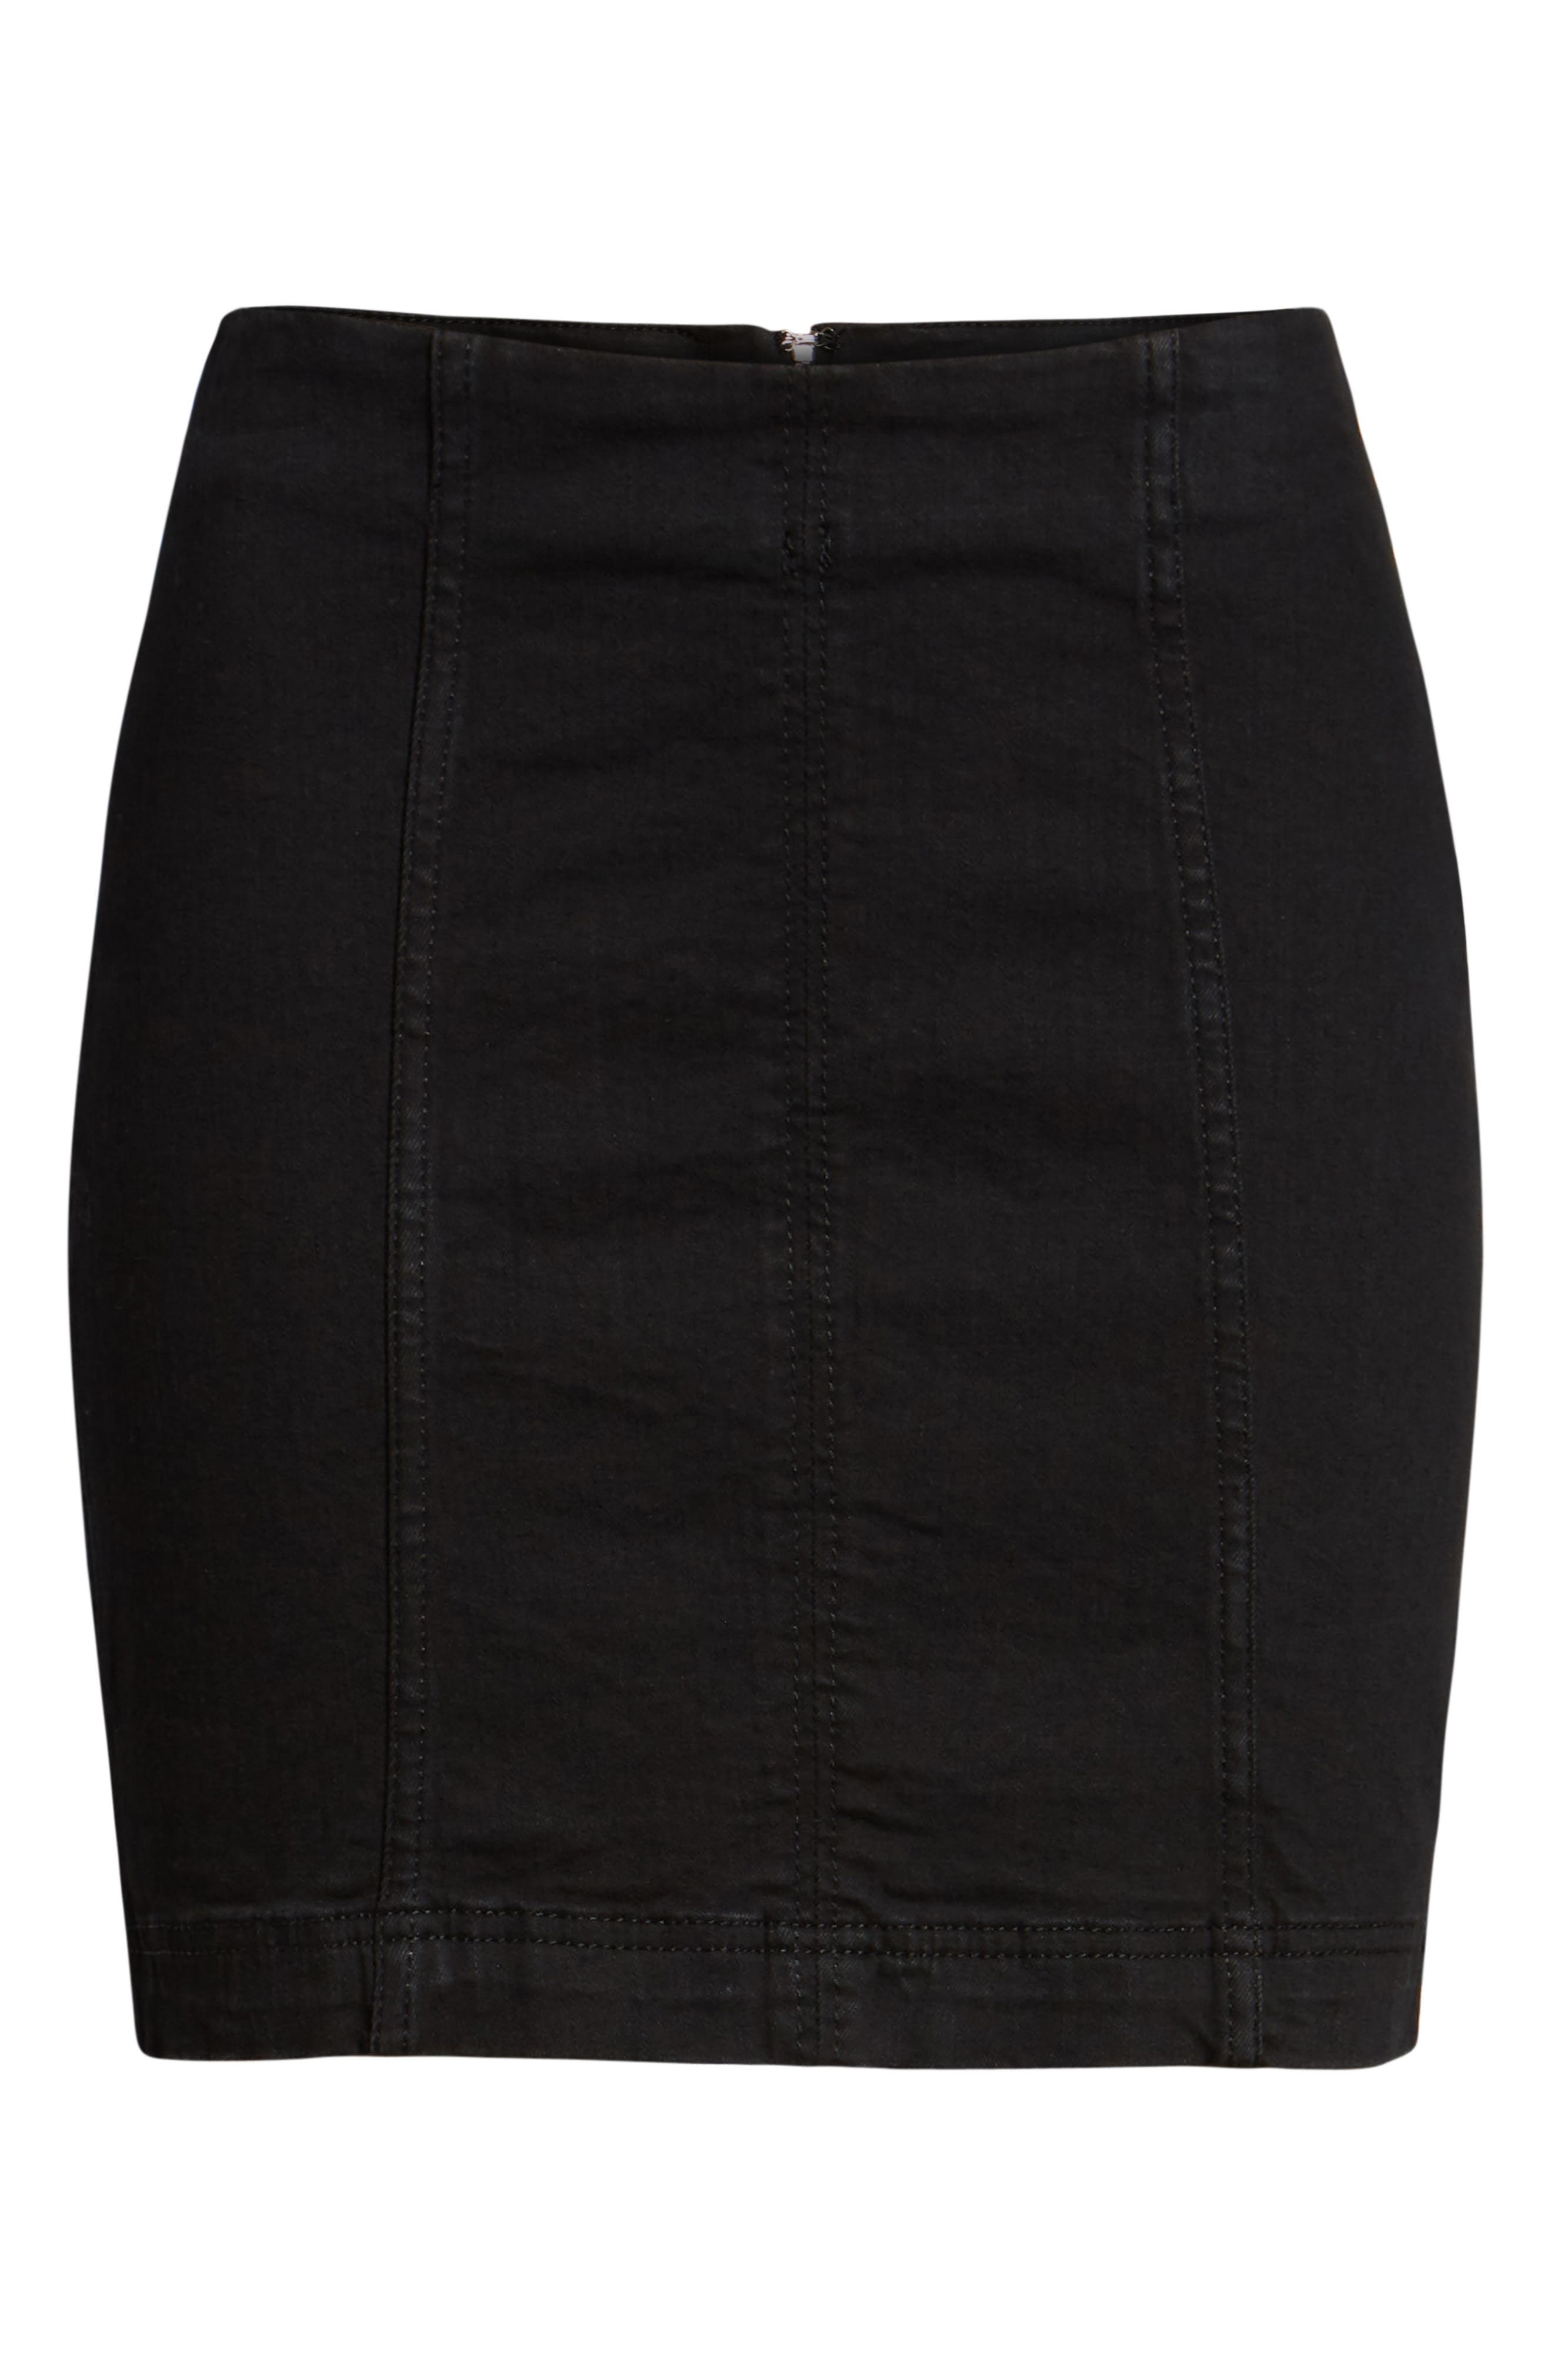 FREE PEOPLE We the Free by Free People Modern Denim Miniskirt, Main, color, 001